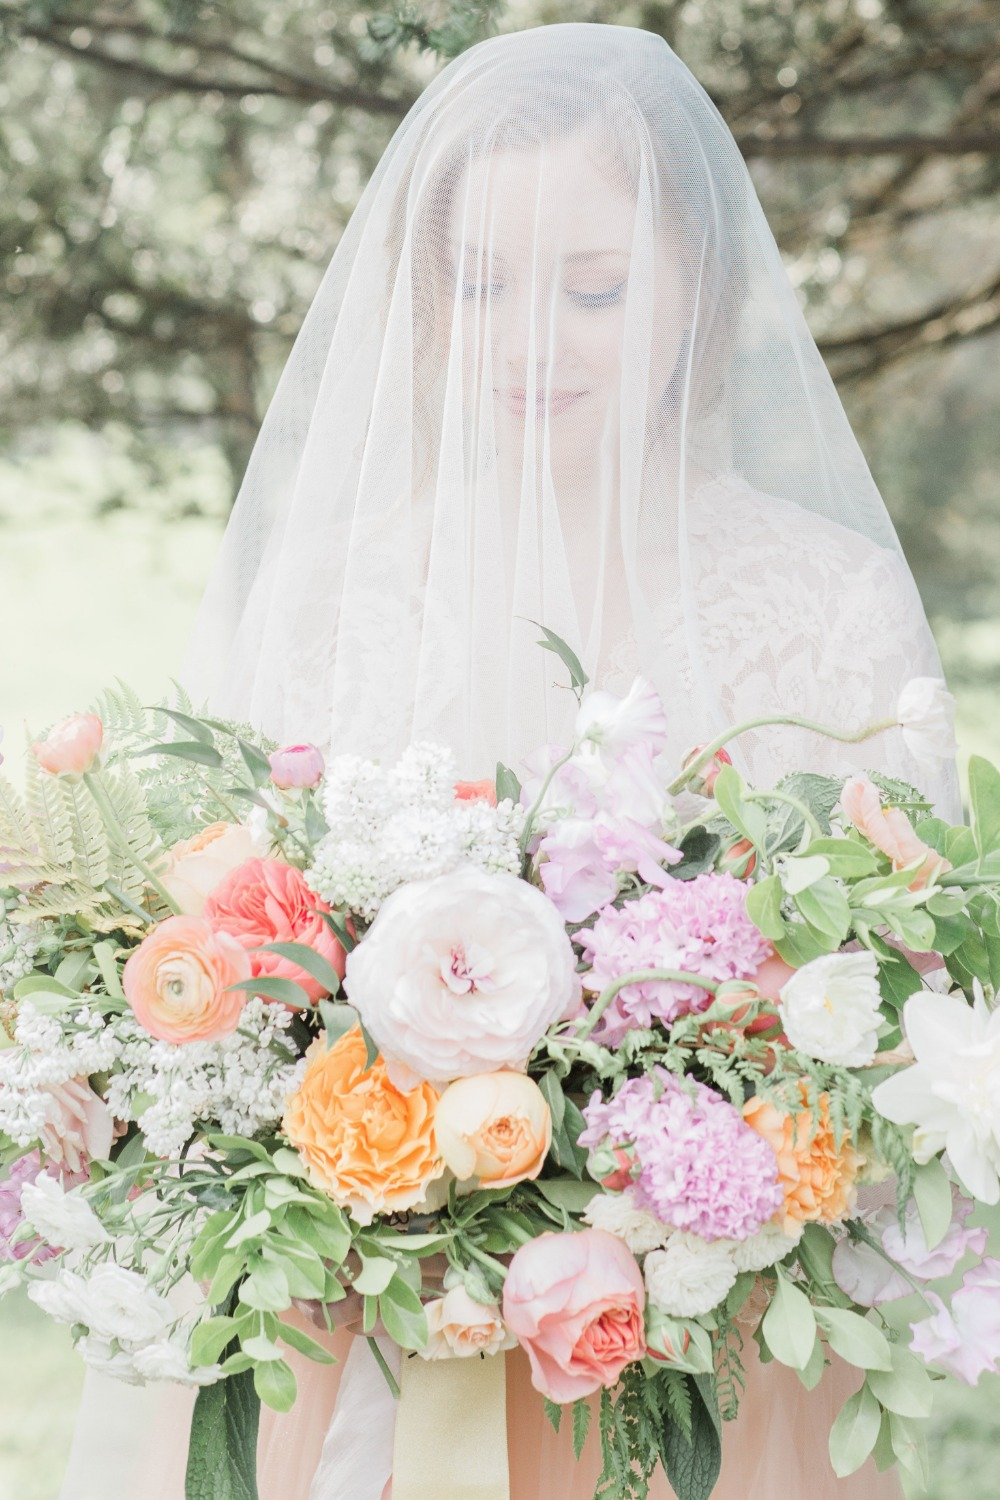 Veil bridal portrait idea